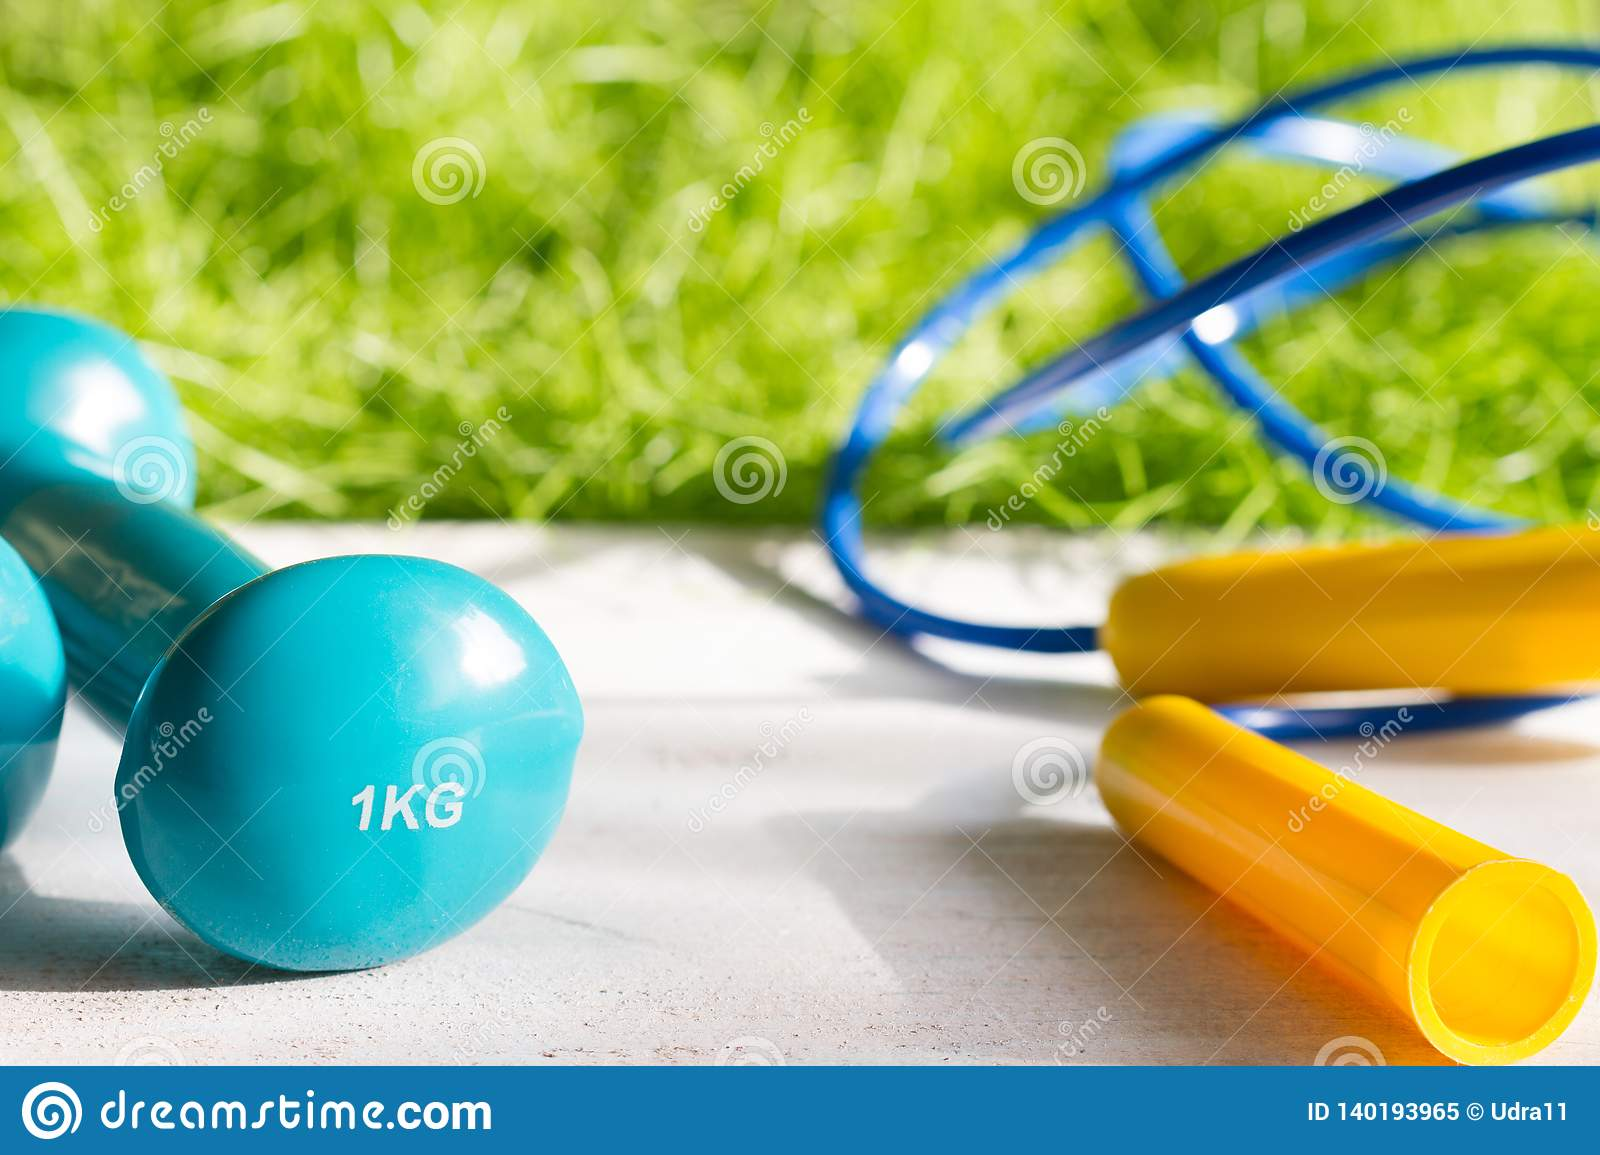 Sport diet and active healthy lifestyle springtime concept with outdoor exercise equipment